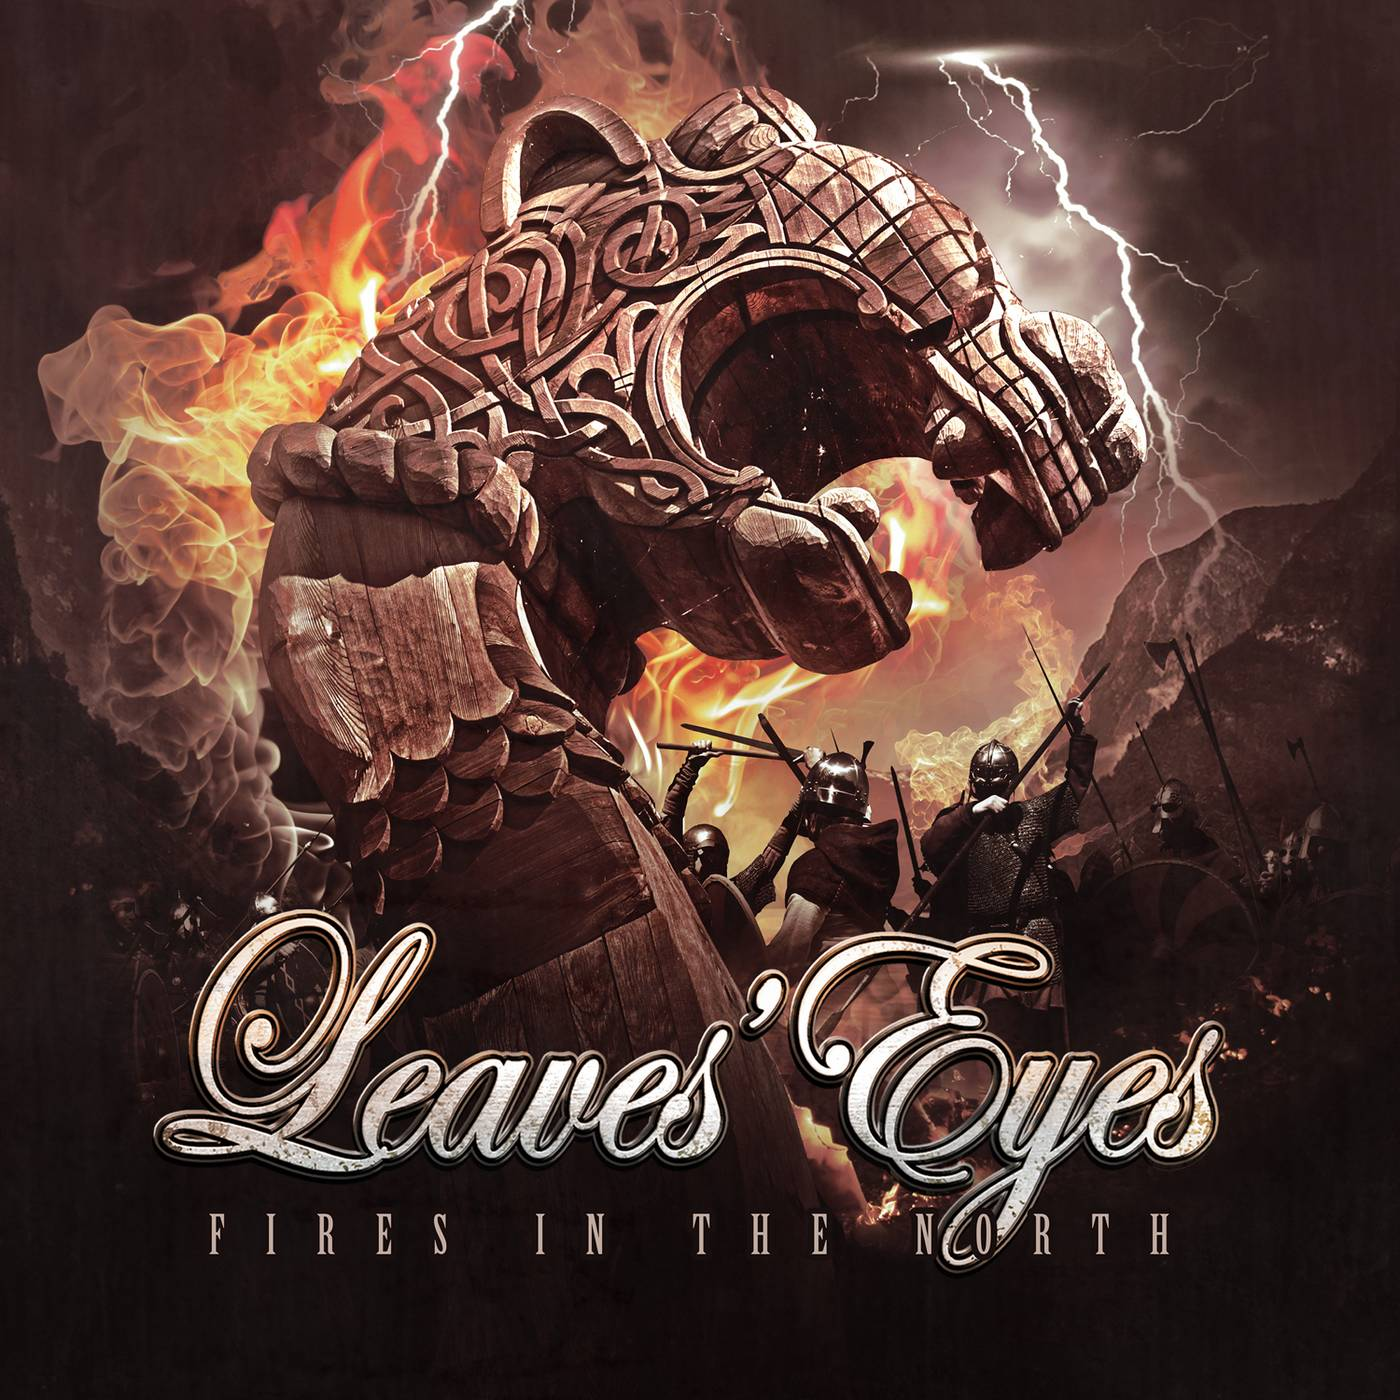 Leaves Eyes: Fires in the North (2016) Book Cover